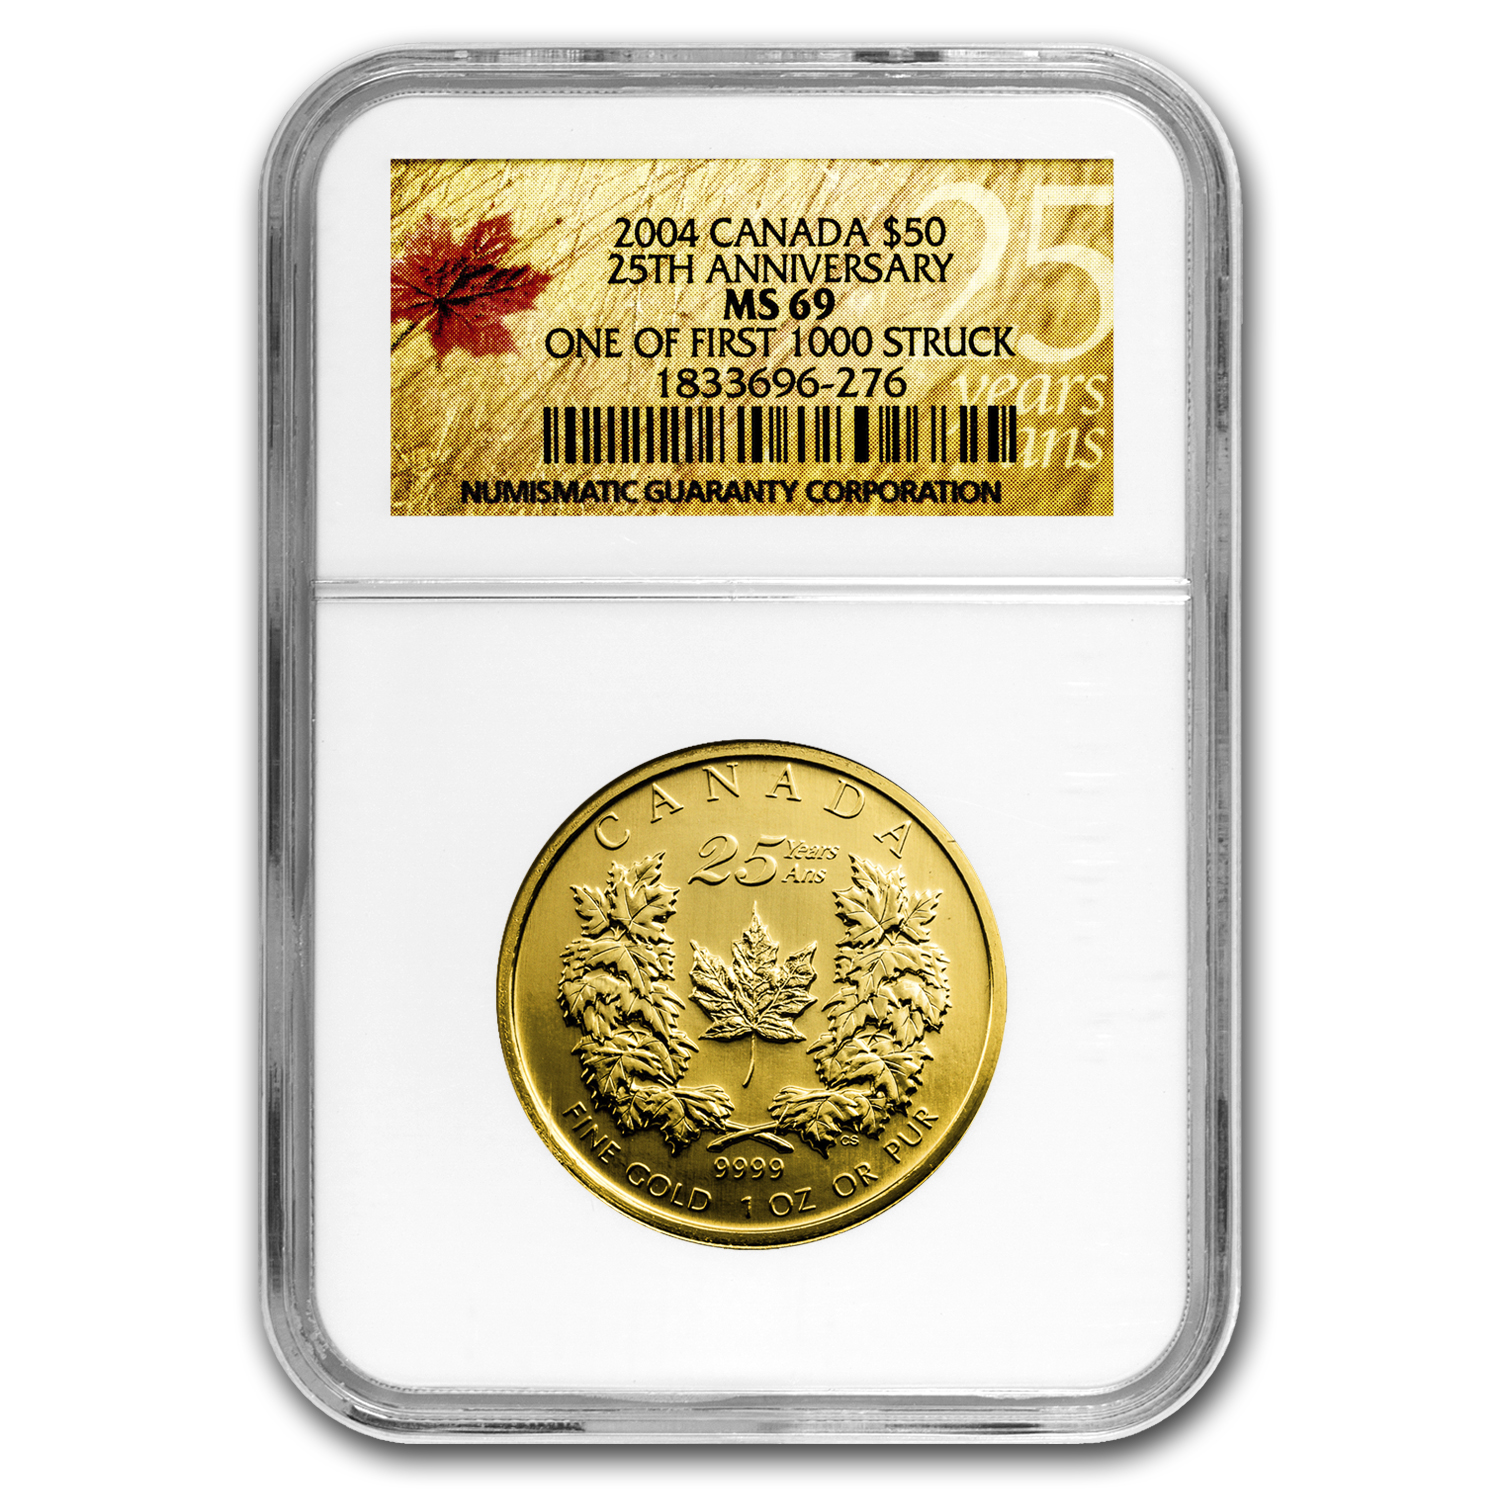 2004 Canada 1 oz Gold Maple Leaf MS-69 NGC (First 1000 Struck)